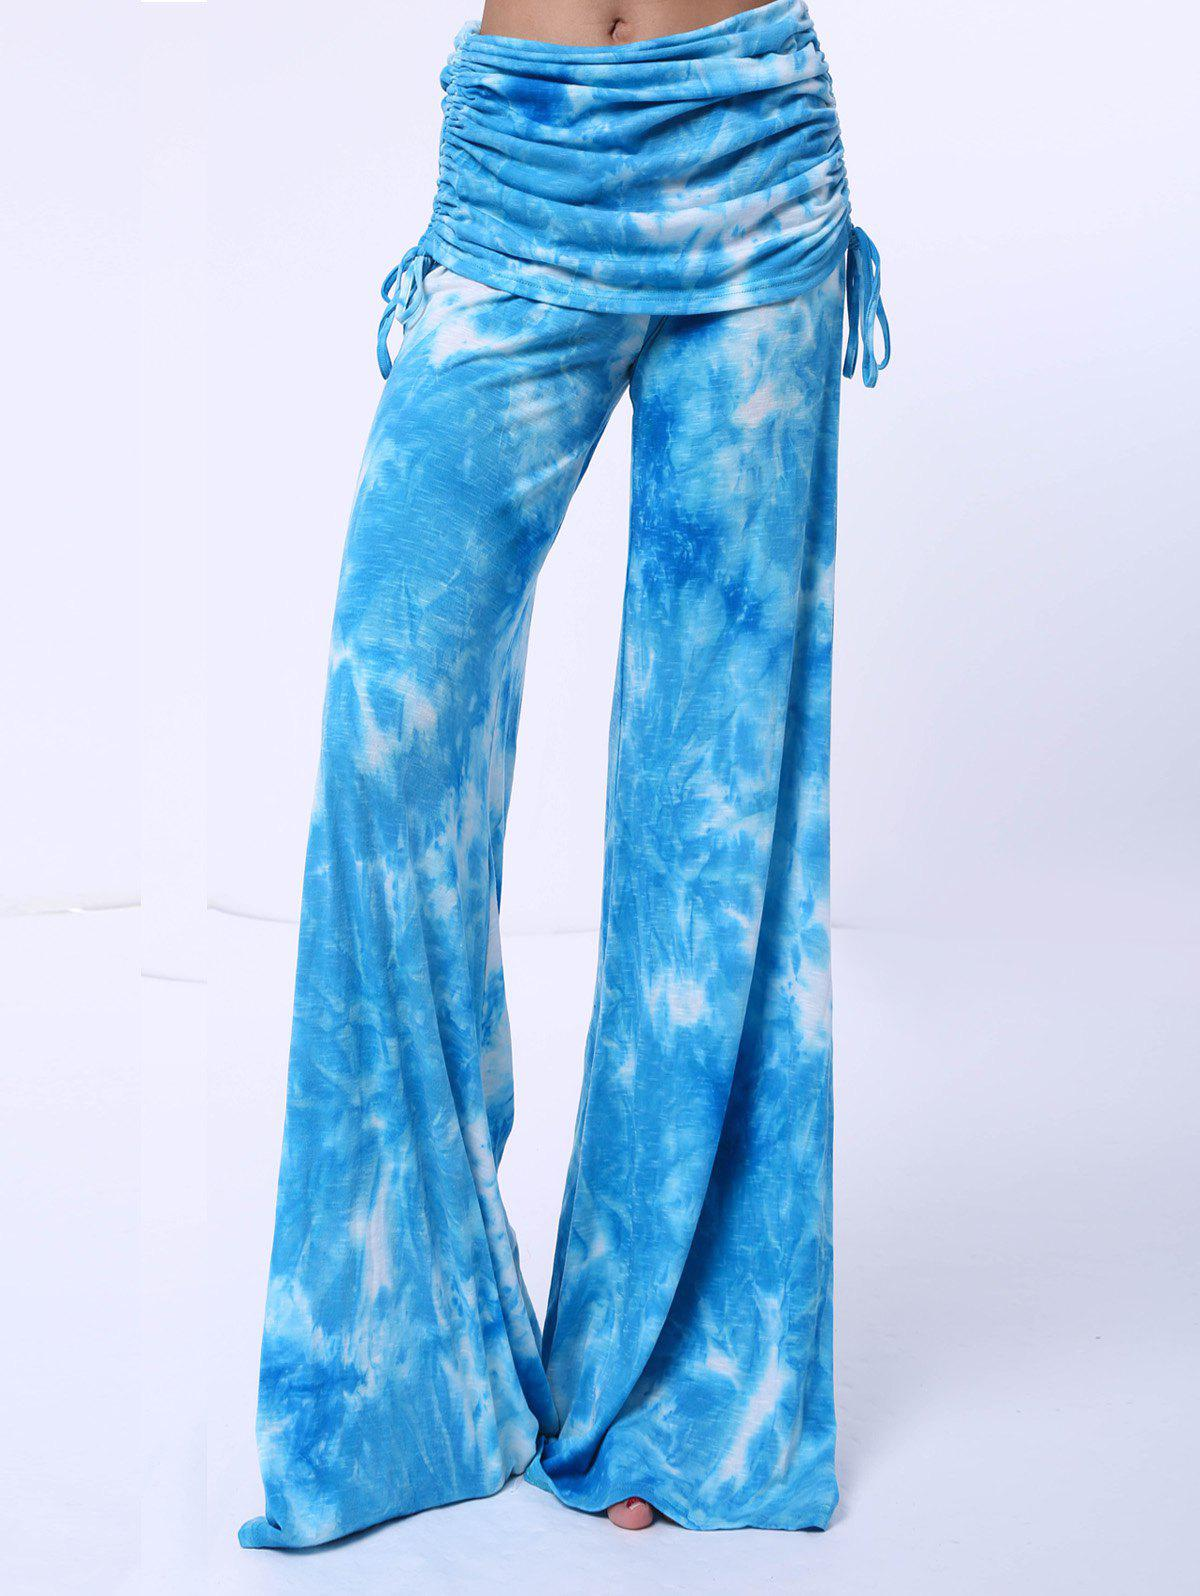 Chic Printed Mid-Waist Loose-Fitting Women's Pants - BLUE S